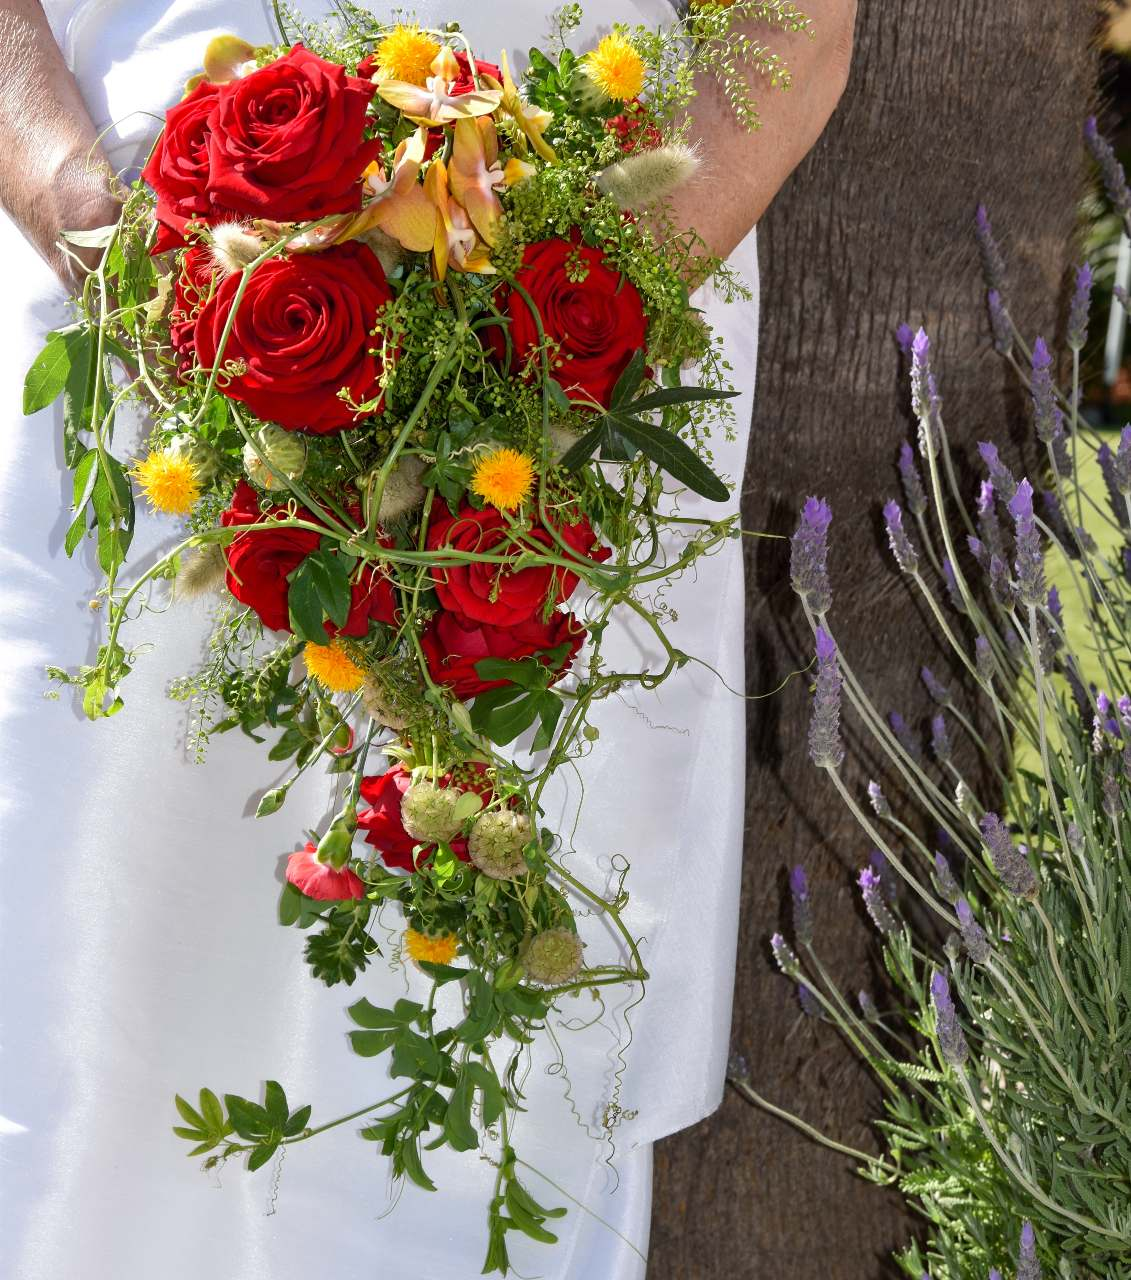 Angelica Lacarbonara shares her excitement on a Post COVID Italian Wedding Floral Scene